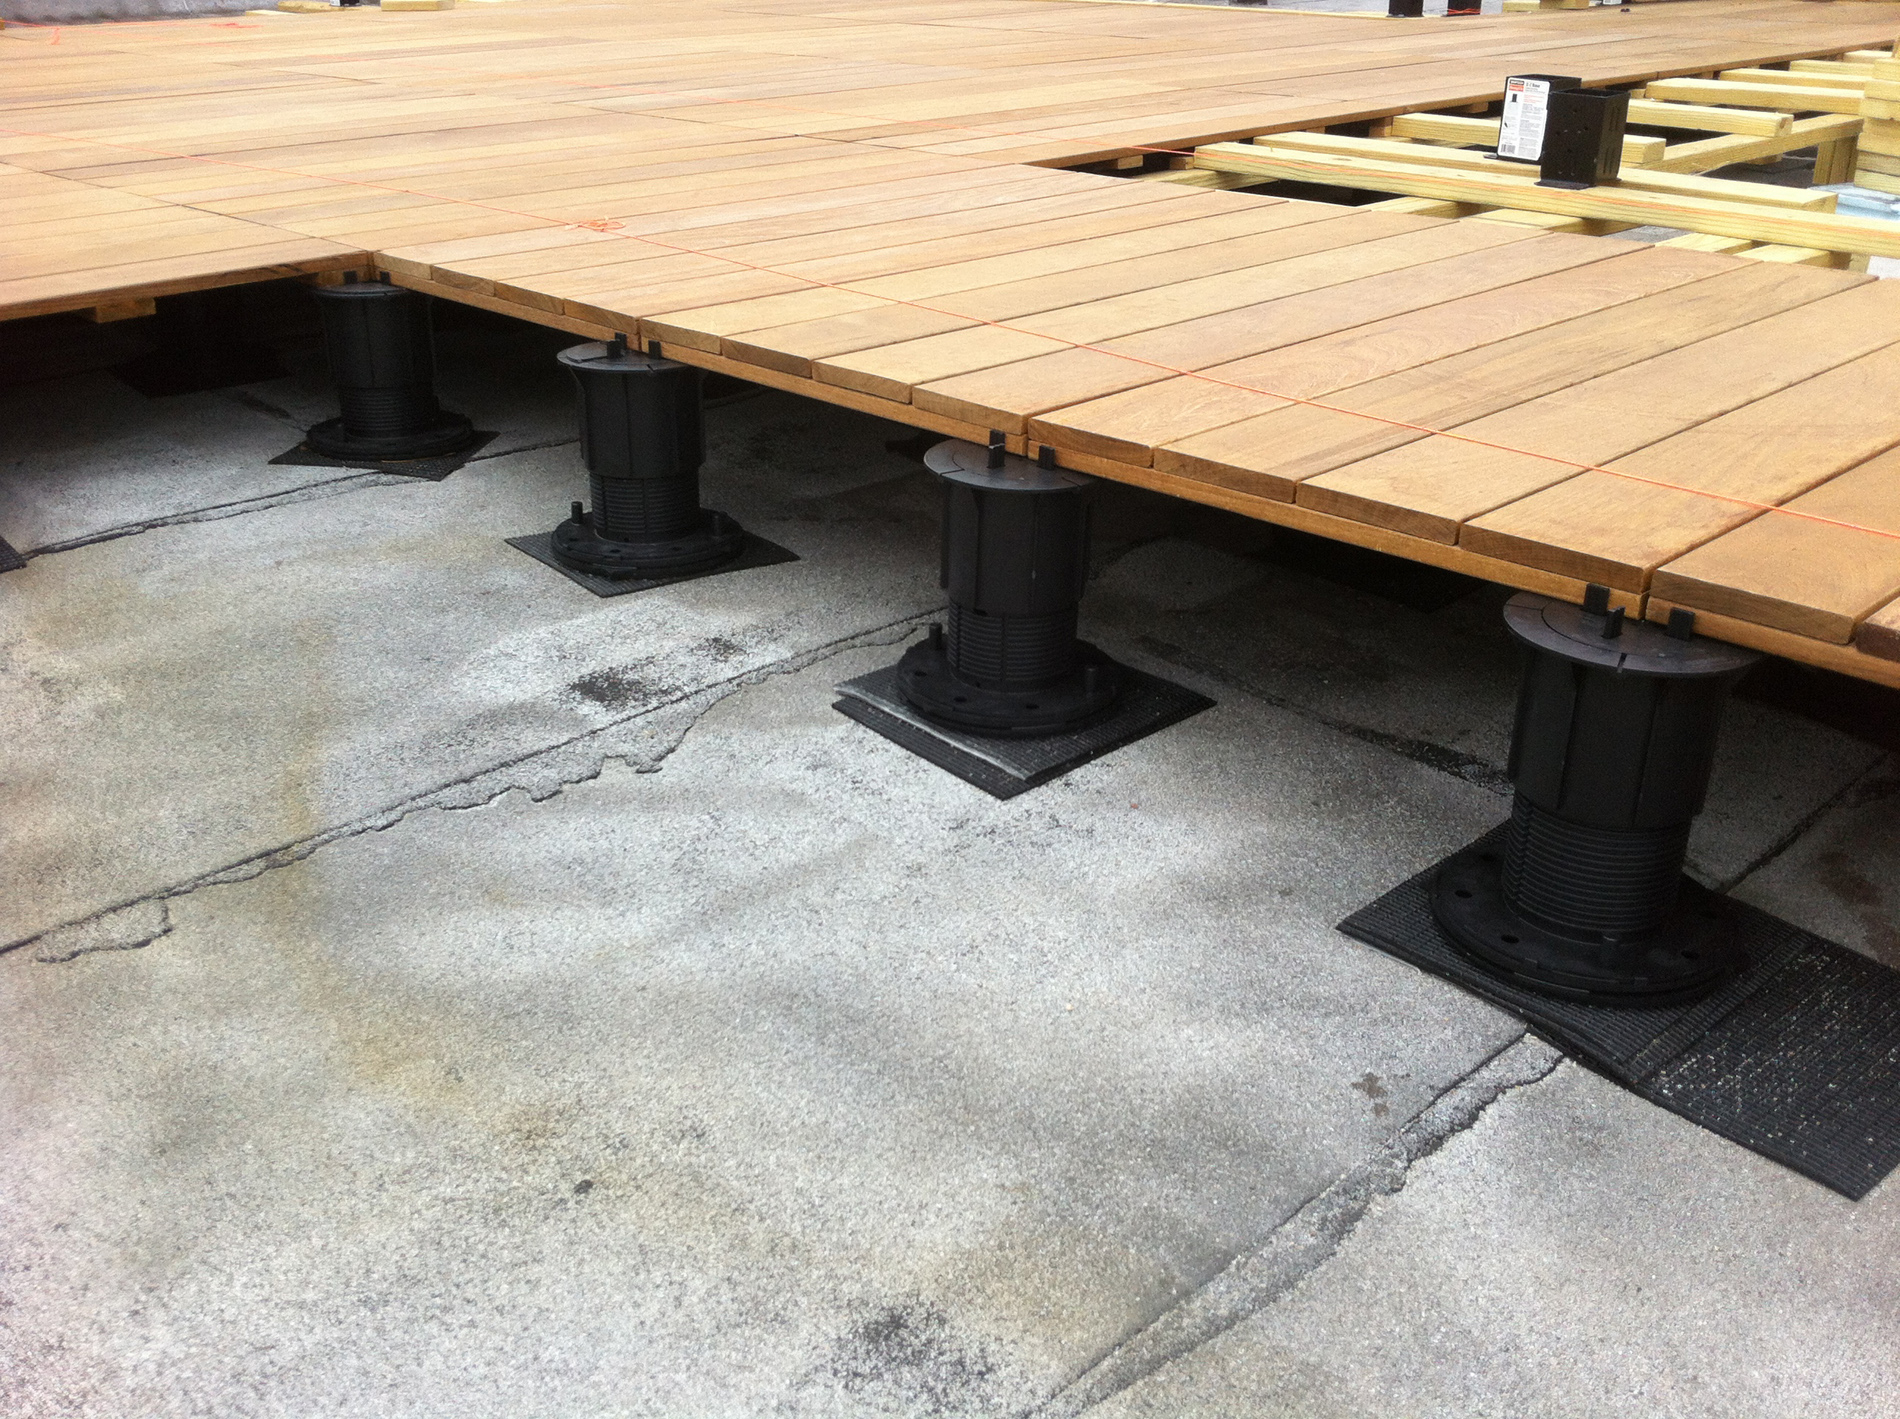 Adjustable Pedestal Decking Systems All Decked Out regarding dimensions 1900 X 1419